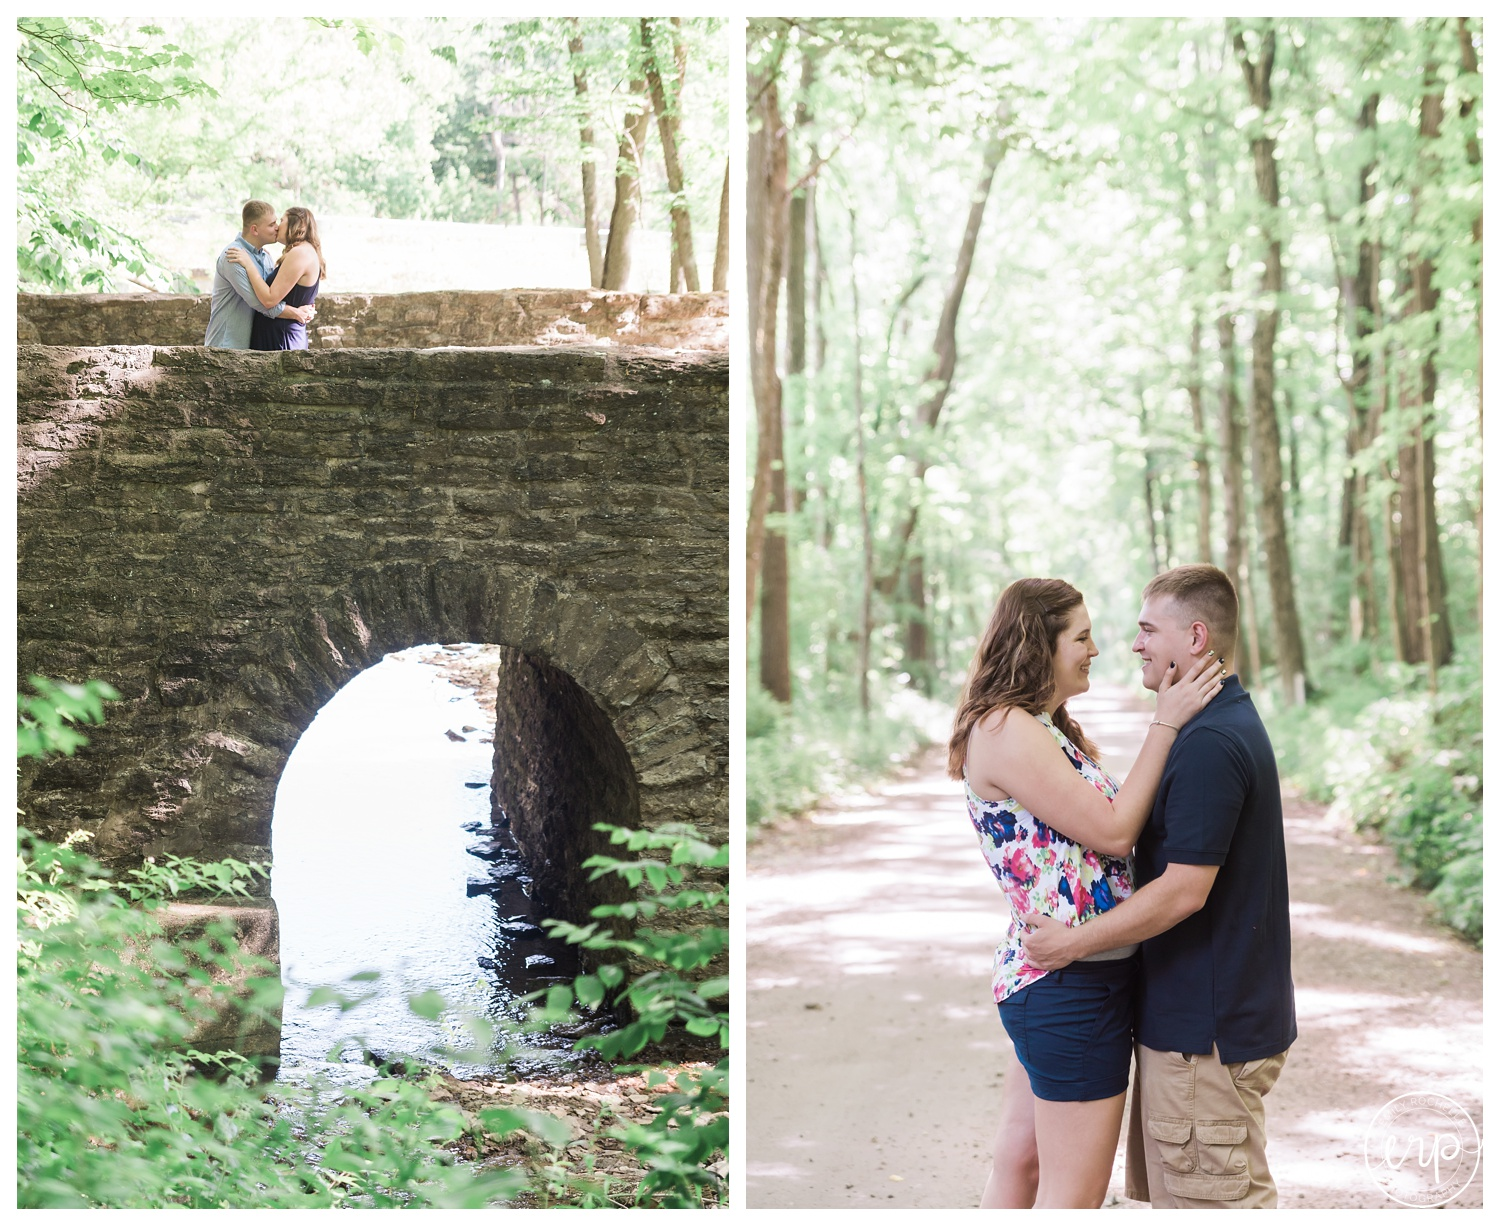 Engaged couple kissing on bridge at a park.